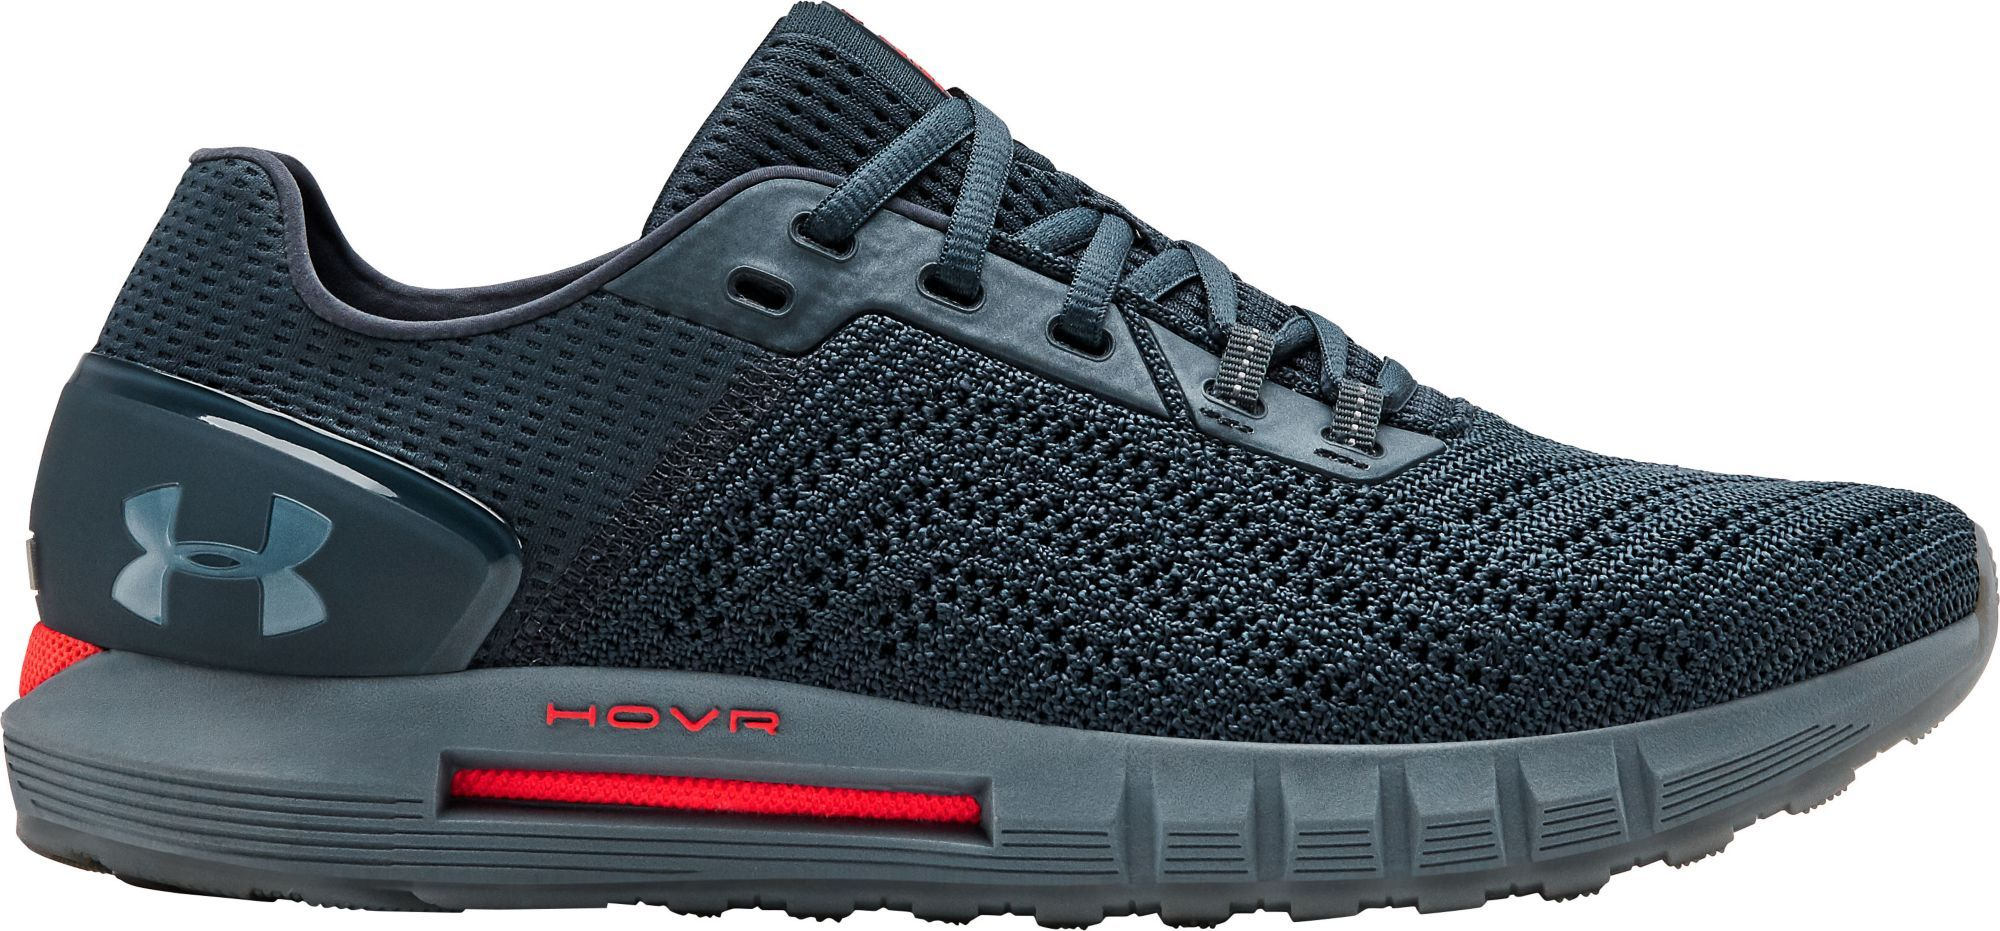 Under Armour Men S Hovr Sonic 2 Running Shoes Running Shoes For Men Under Armour Under Armour Men